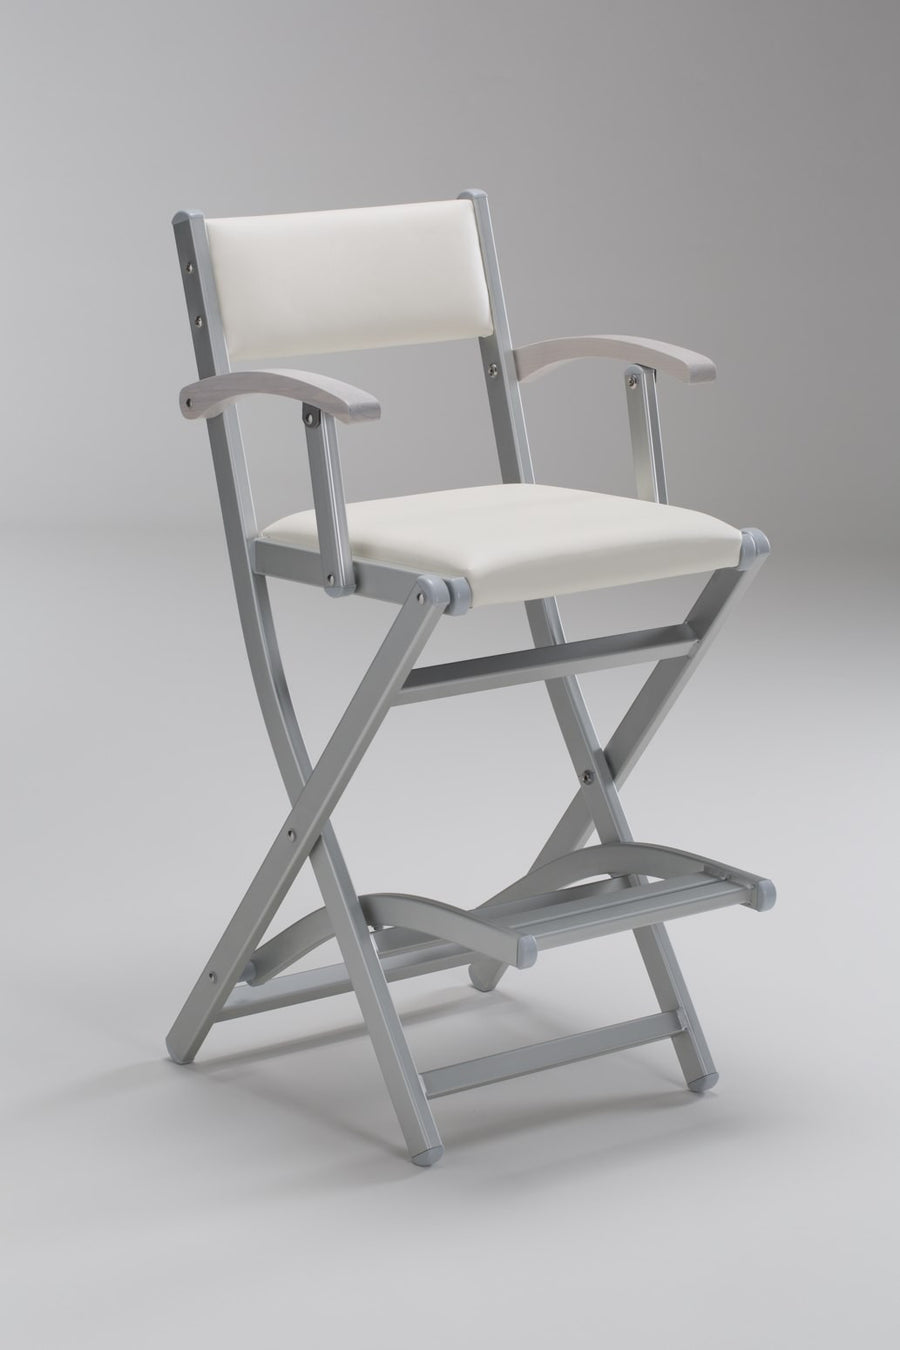 Padded Folding Aluminium Salon Armchair - Personalise Online - White Seat